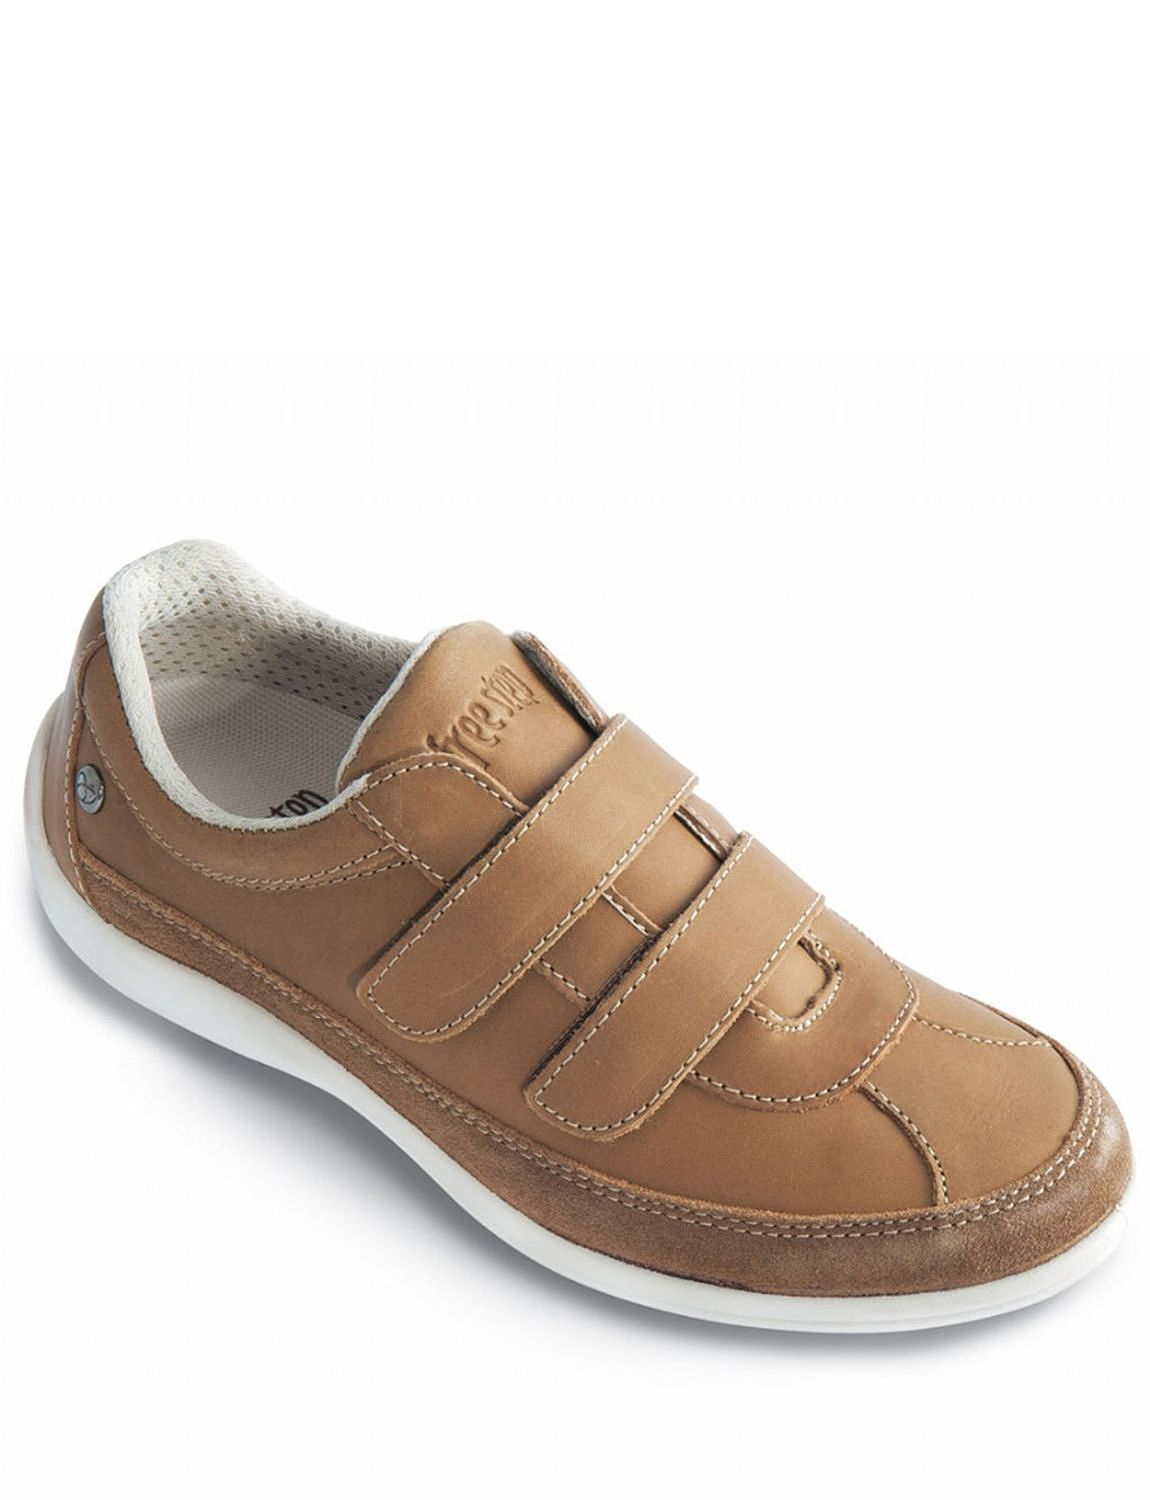 azalea leather comfort shoe ladieswear footwear